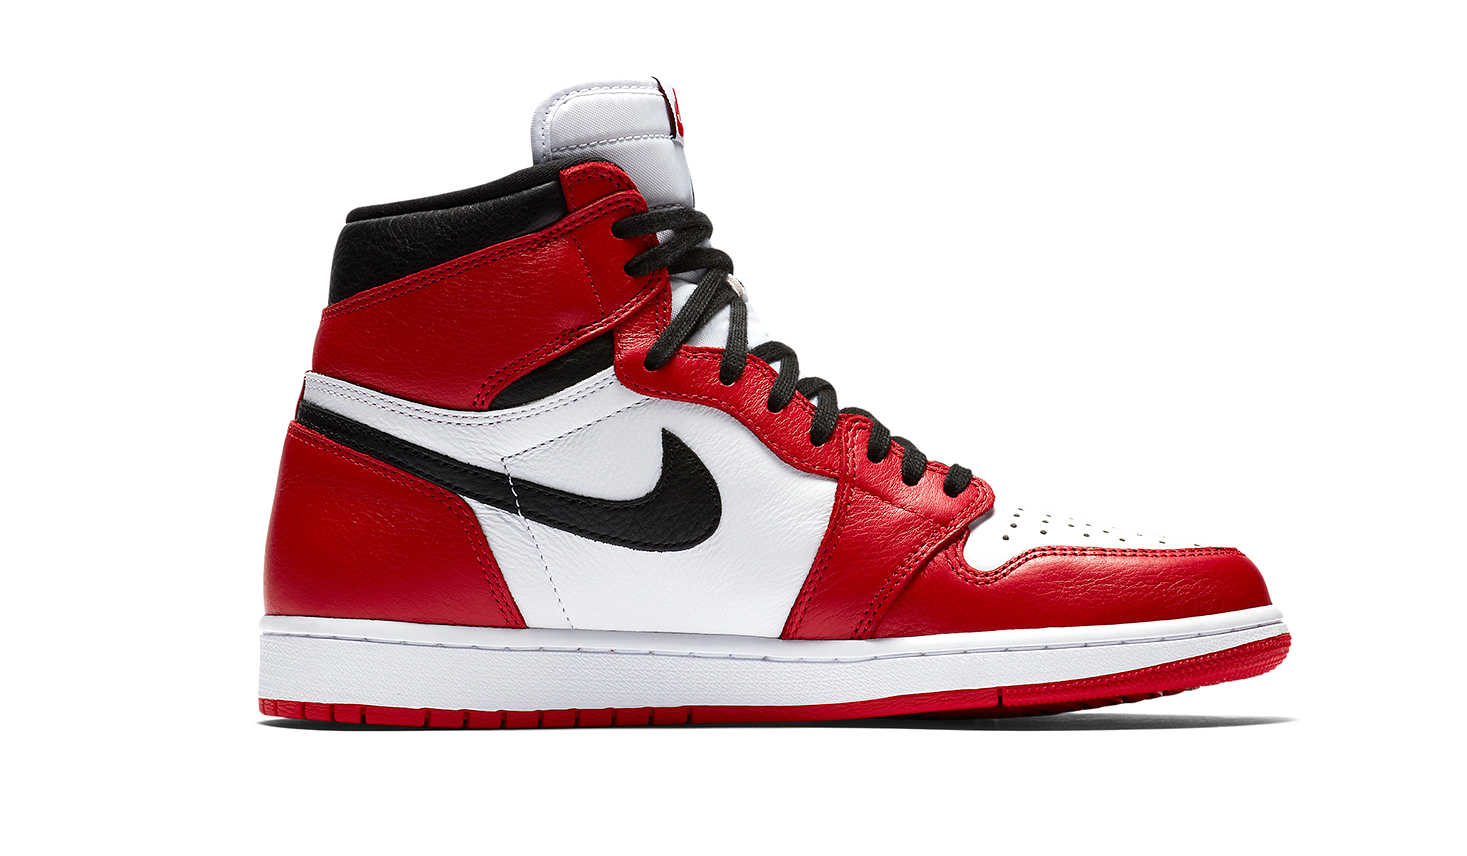 comprar-air-jordan-1-861428-061-homage-to-home-sneakers-2